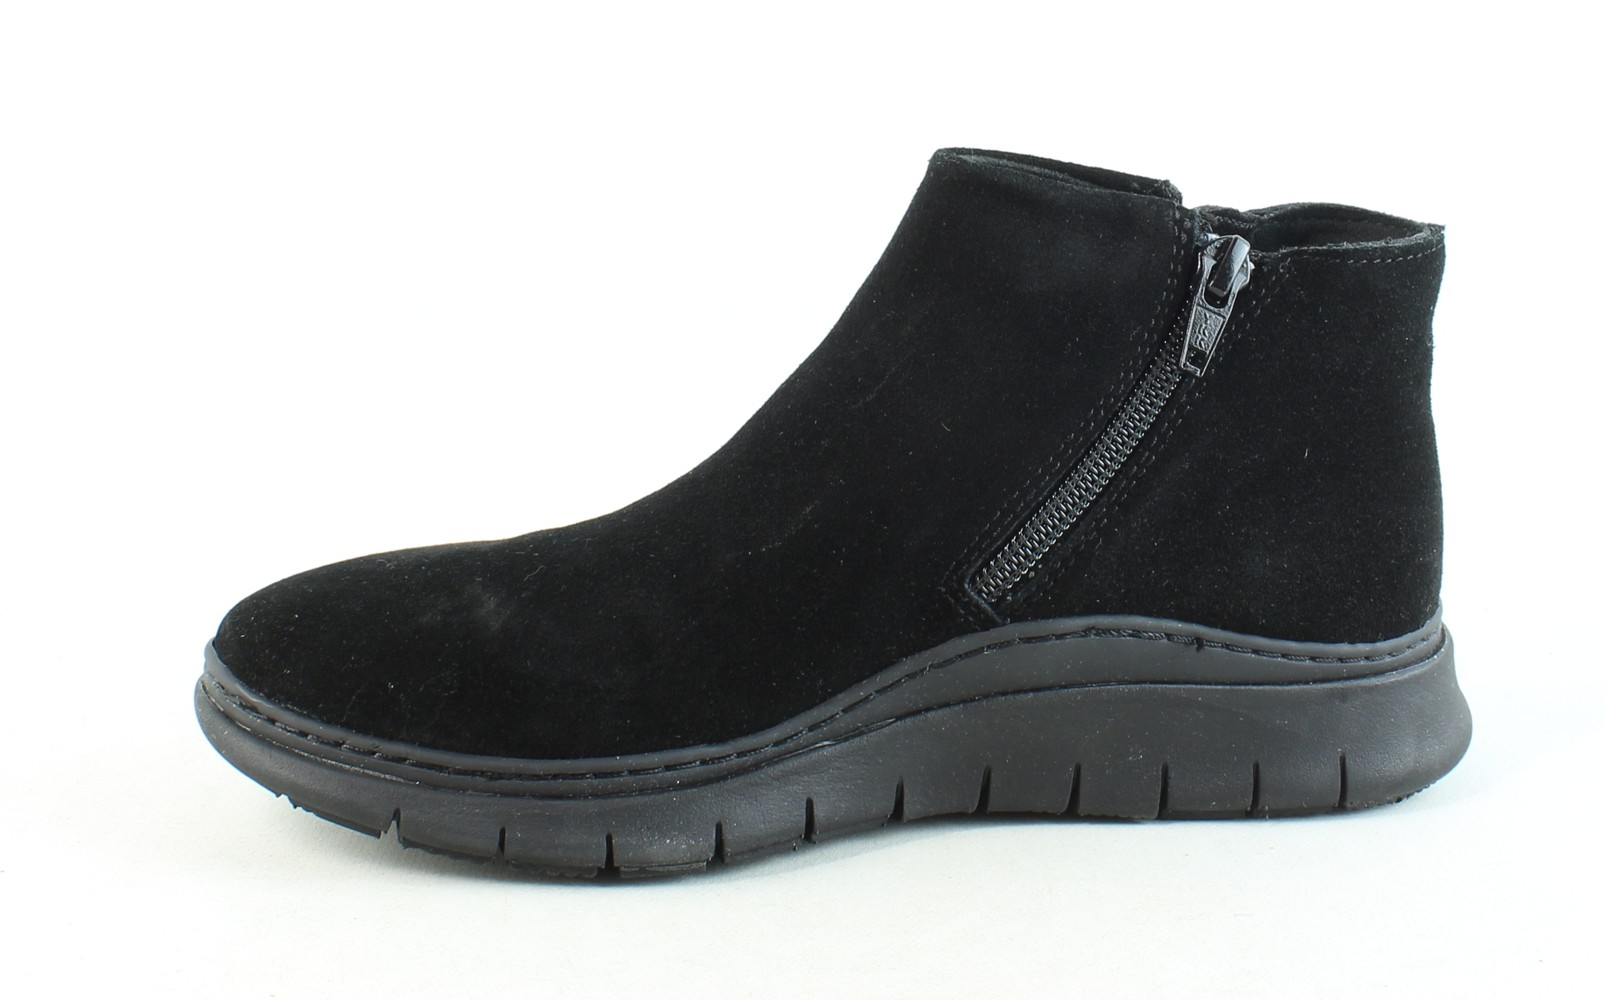 Vionic-Womens-Fresh-Dylan-Suede-Side-Zip-Casual-Comfort-Ankle-Boots thumbnail 5